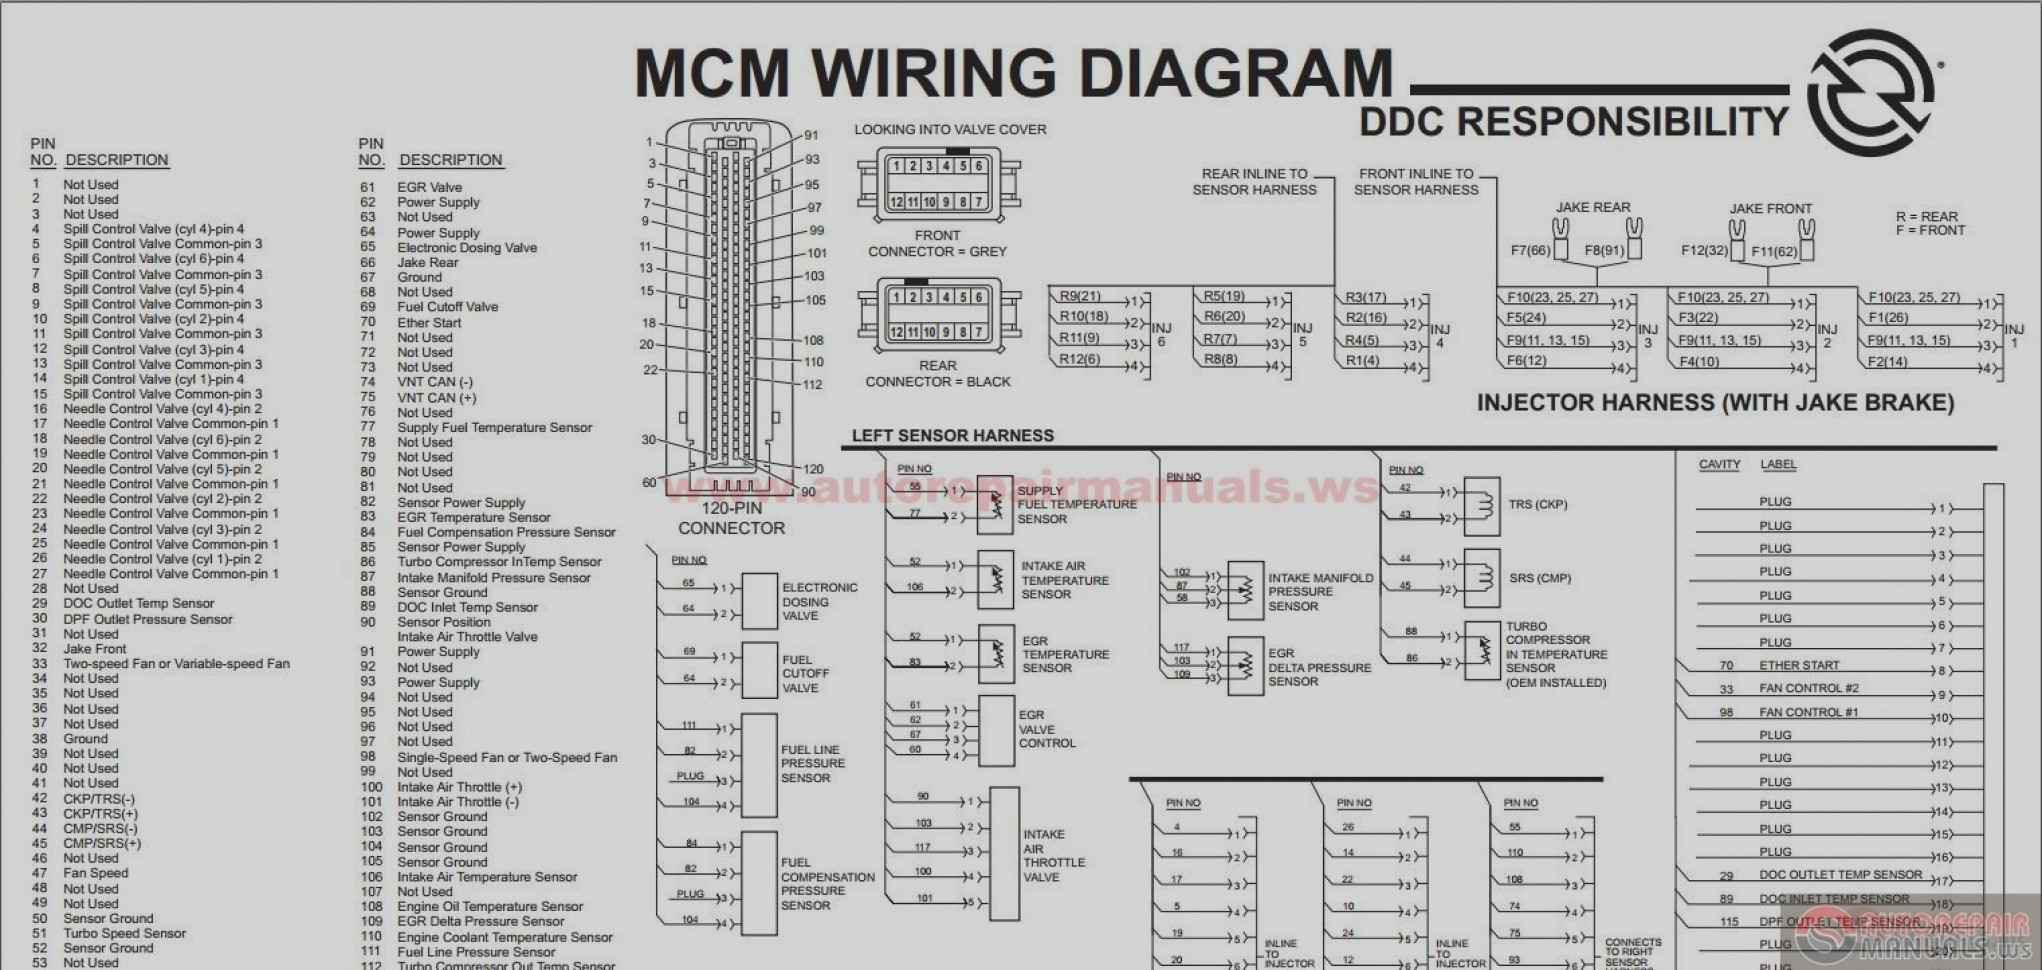 60 series ddec iv wiring diagram explore schematic wiring diagram u2022 rh webwiringdiagram today 2006 Detroit Diesel 60 Series DDEC V ECM Schematic 2007 Detroit Diesel 60 Series DDEC V ECM Schematic